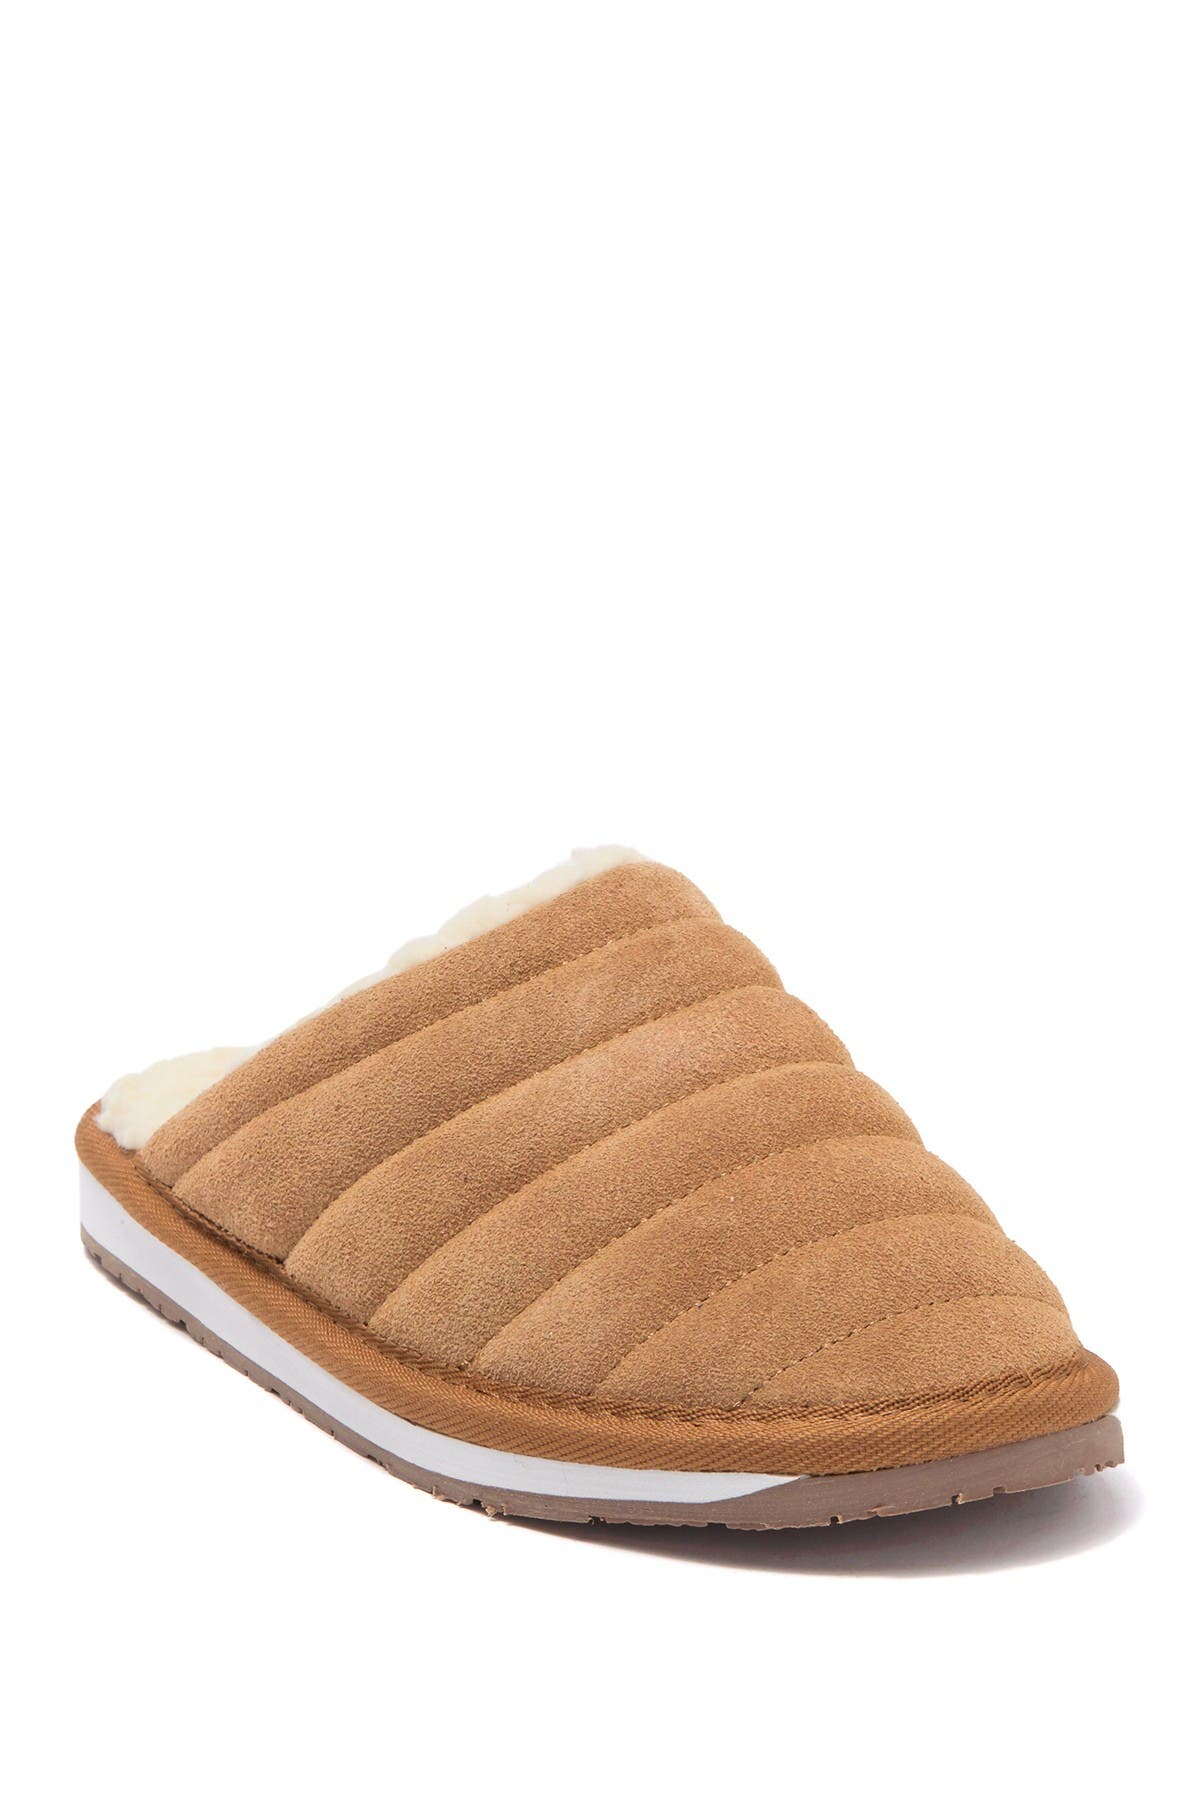 Image of Minnetonka Quilted Traditional Scuff Slipper